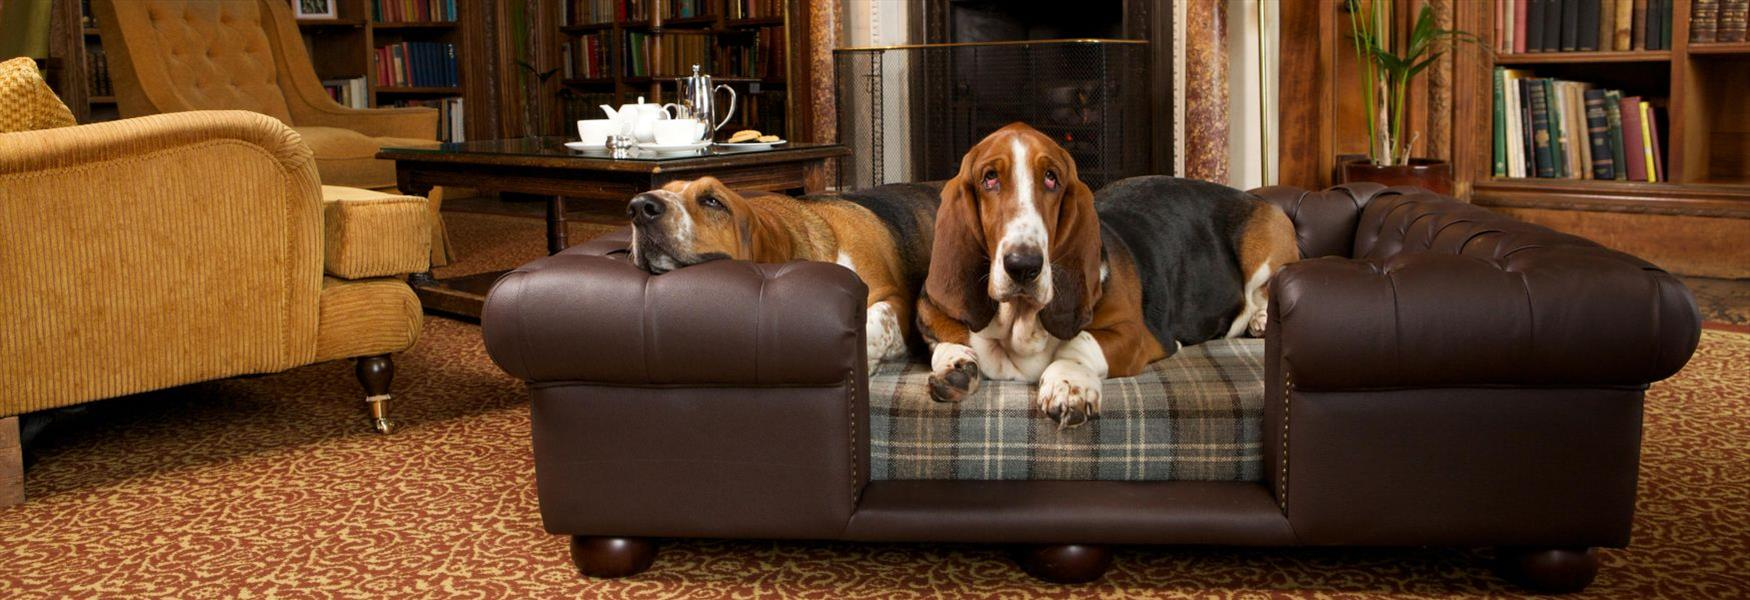 It's a dog's life at Cliveden Hotel